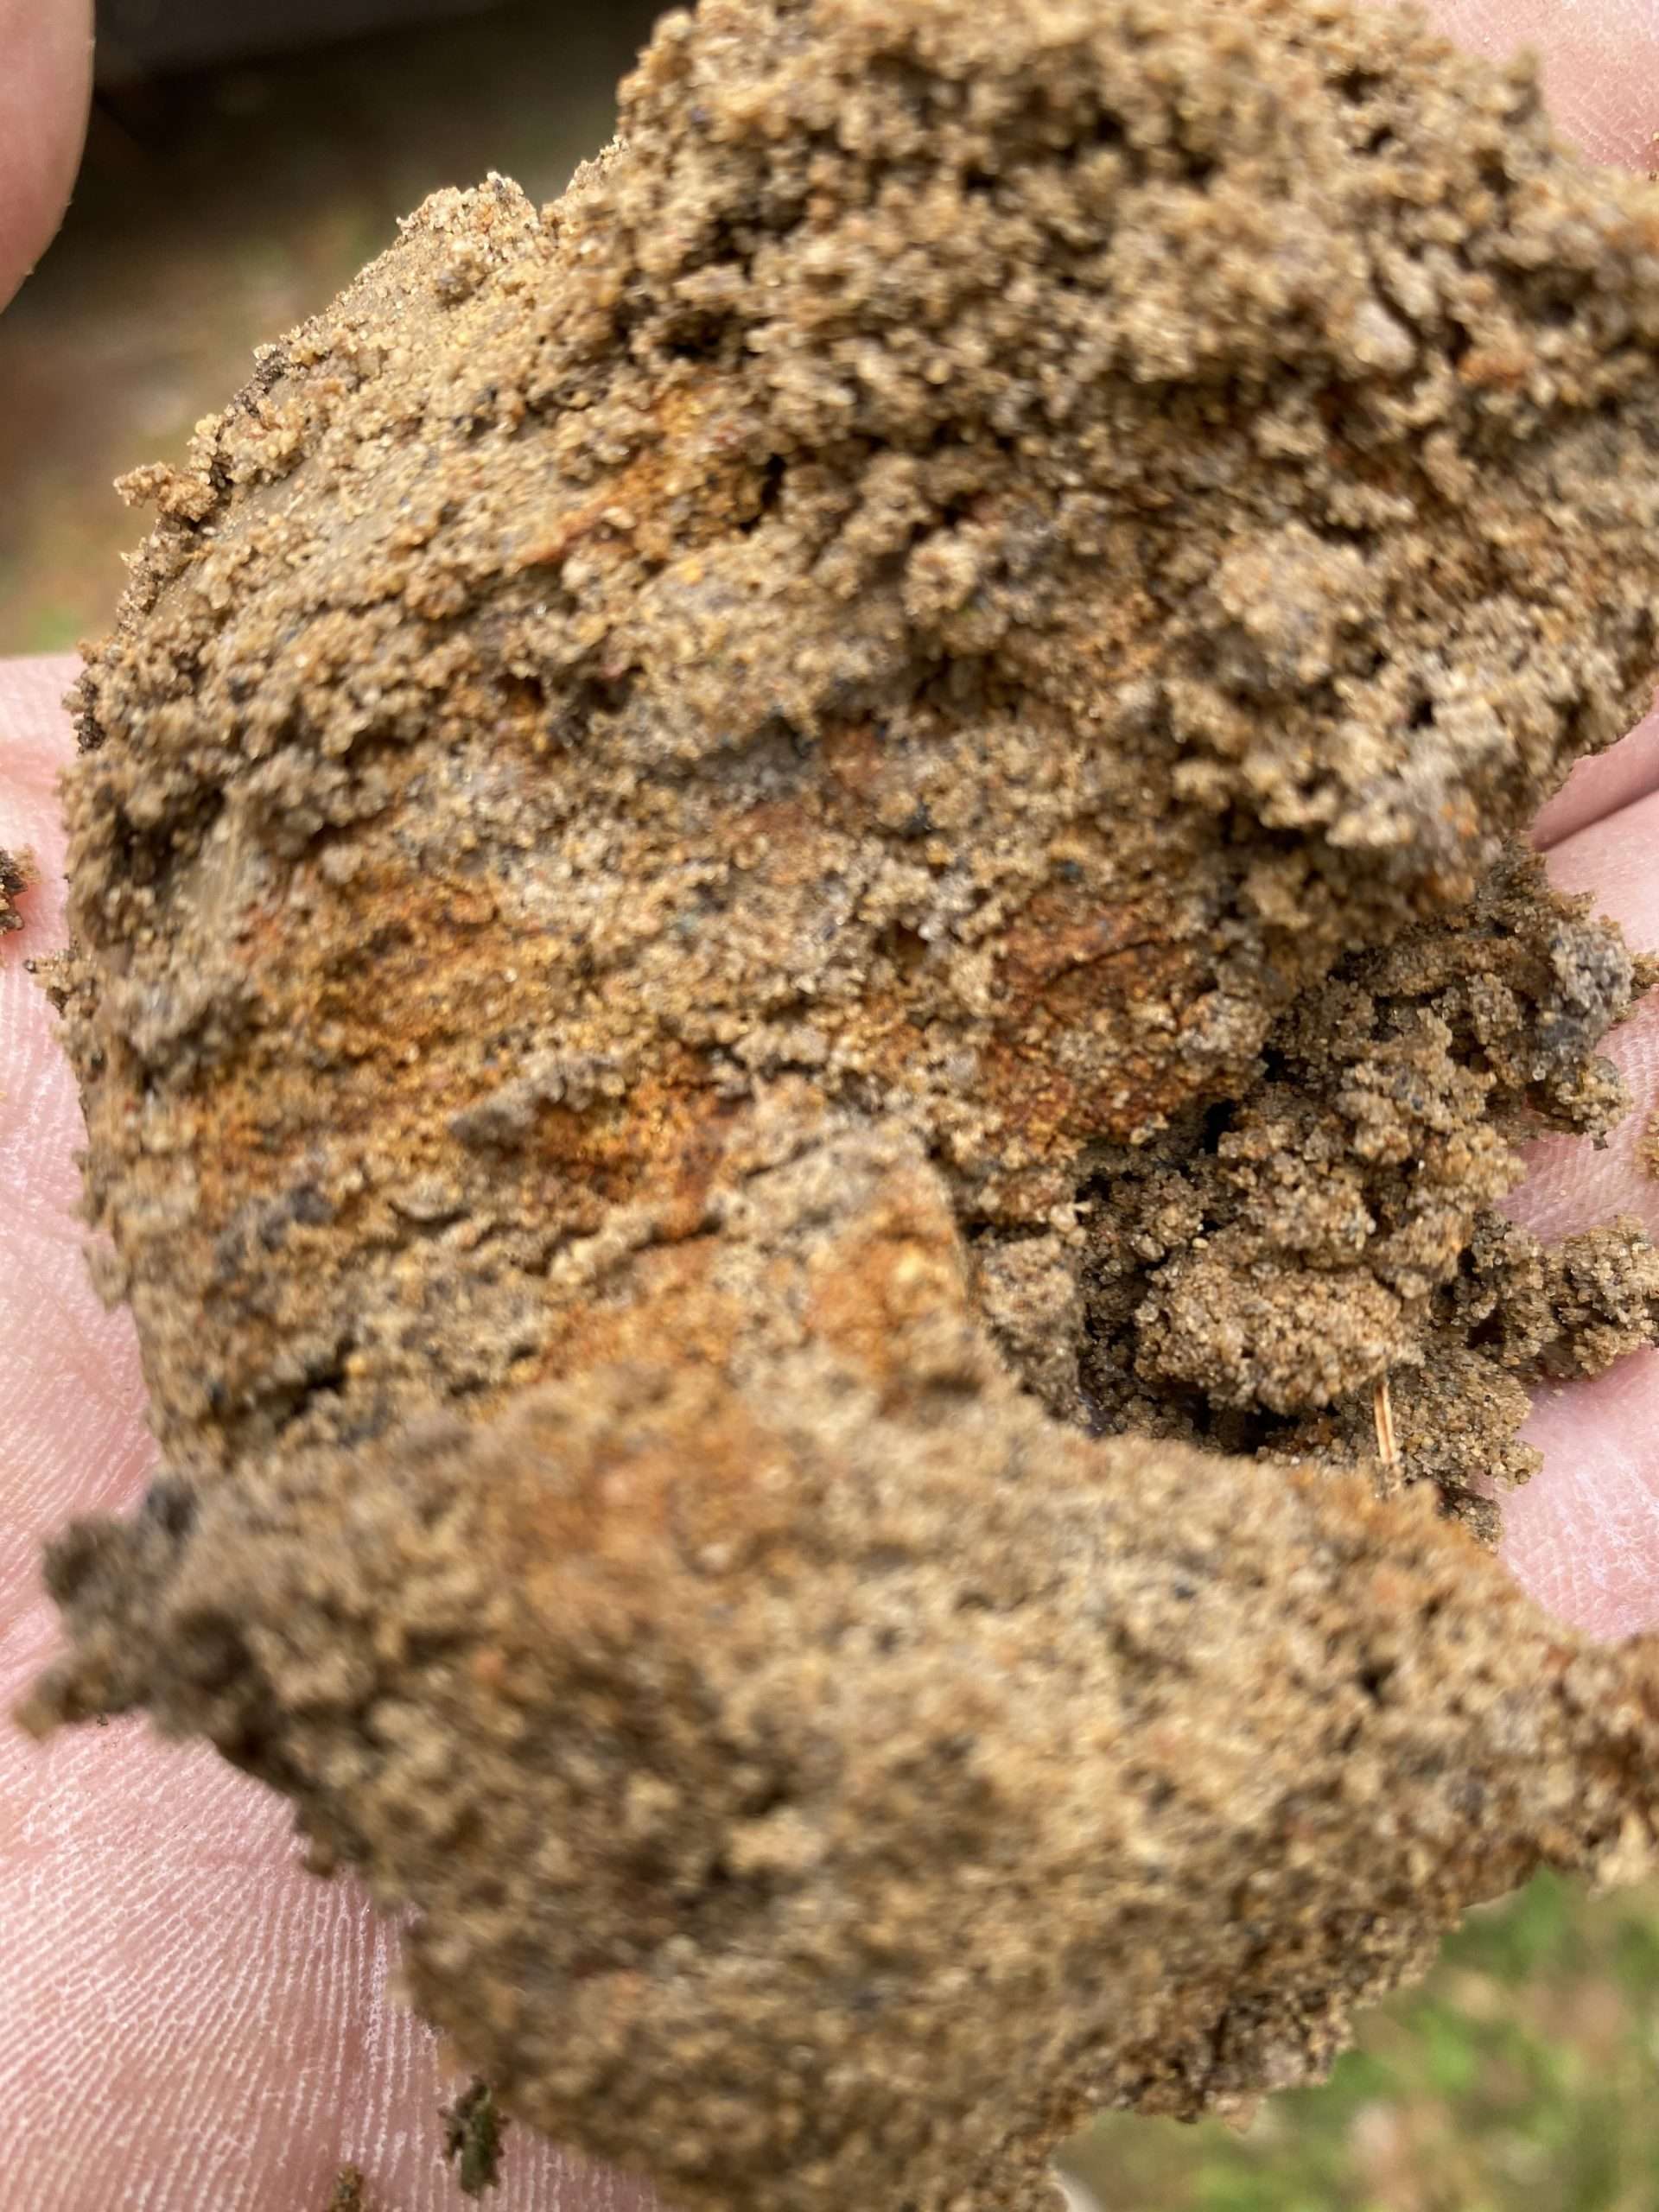 Evaluating Dirt for Septic